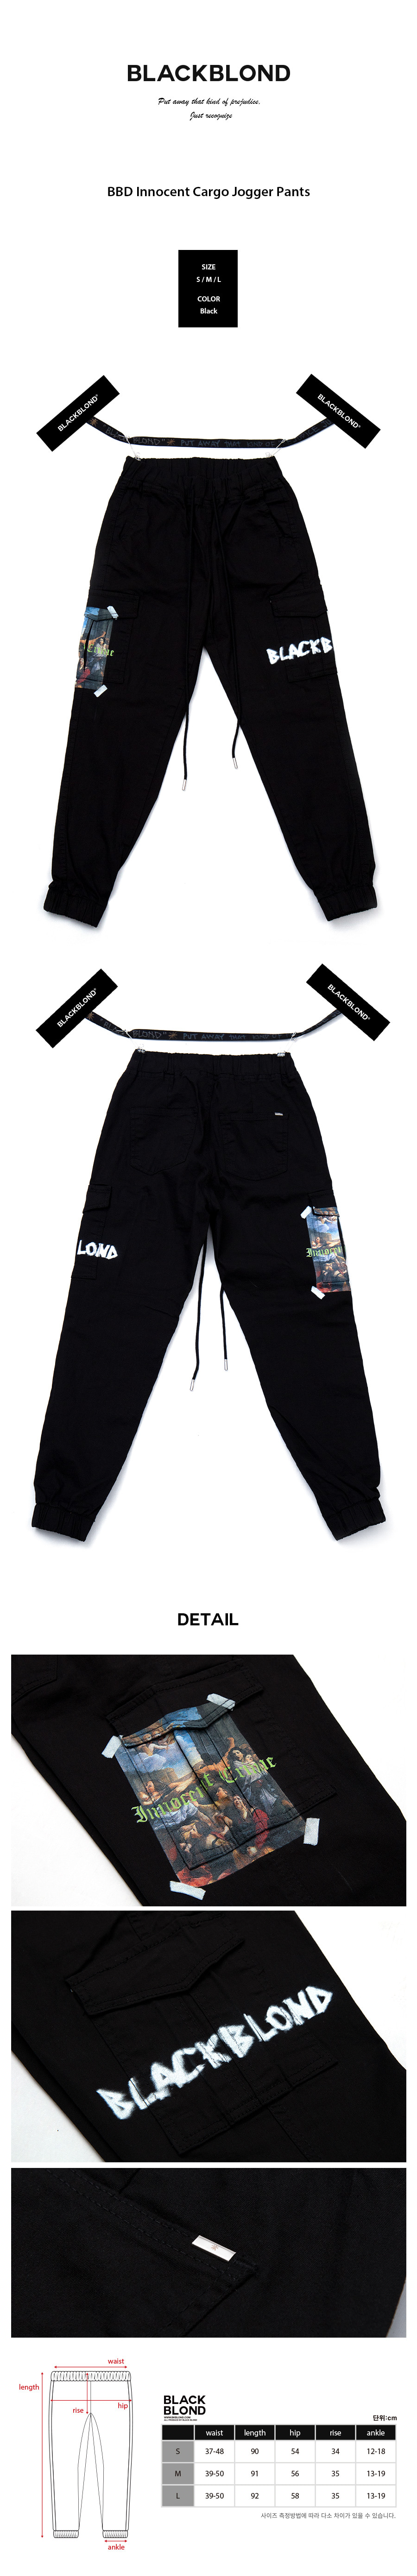 BBD-Innocent-Cargo-Jogger-Pants-%28Black%29.jpg